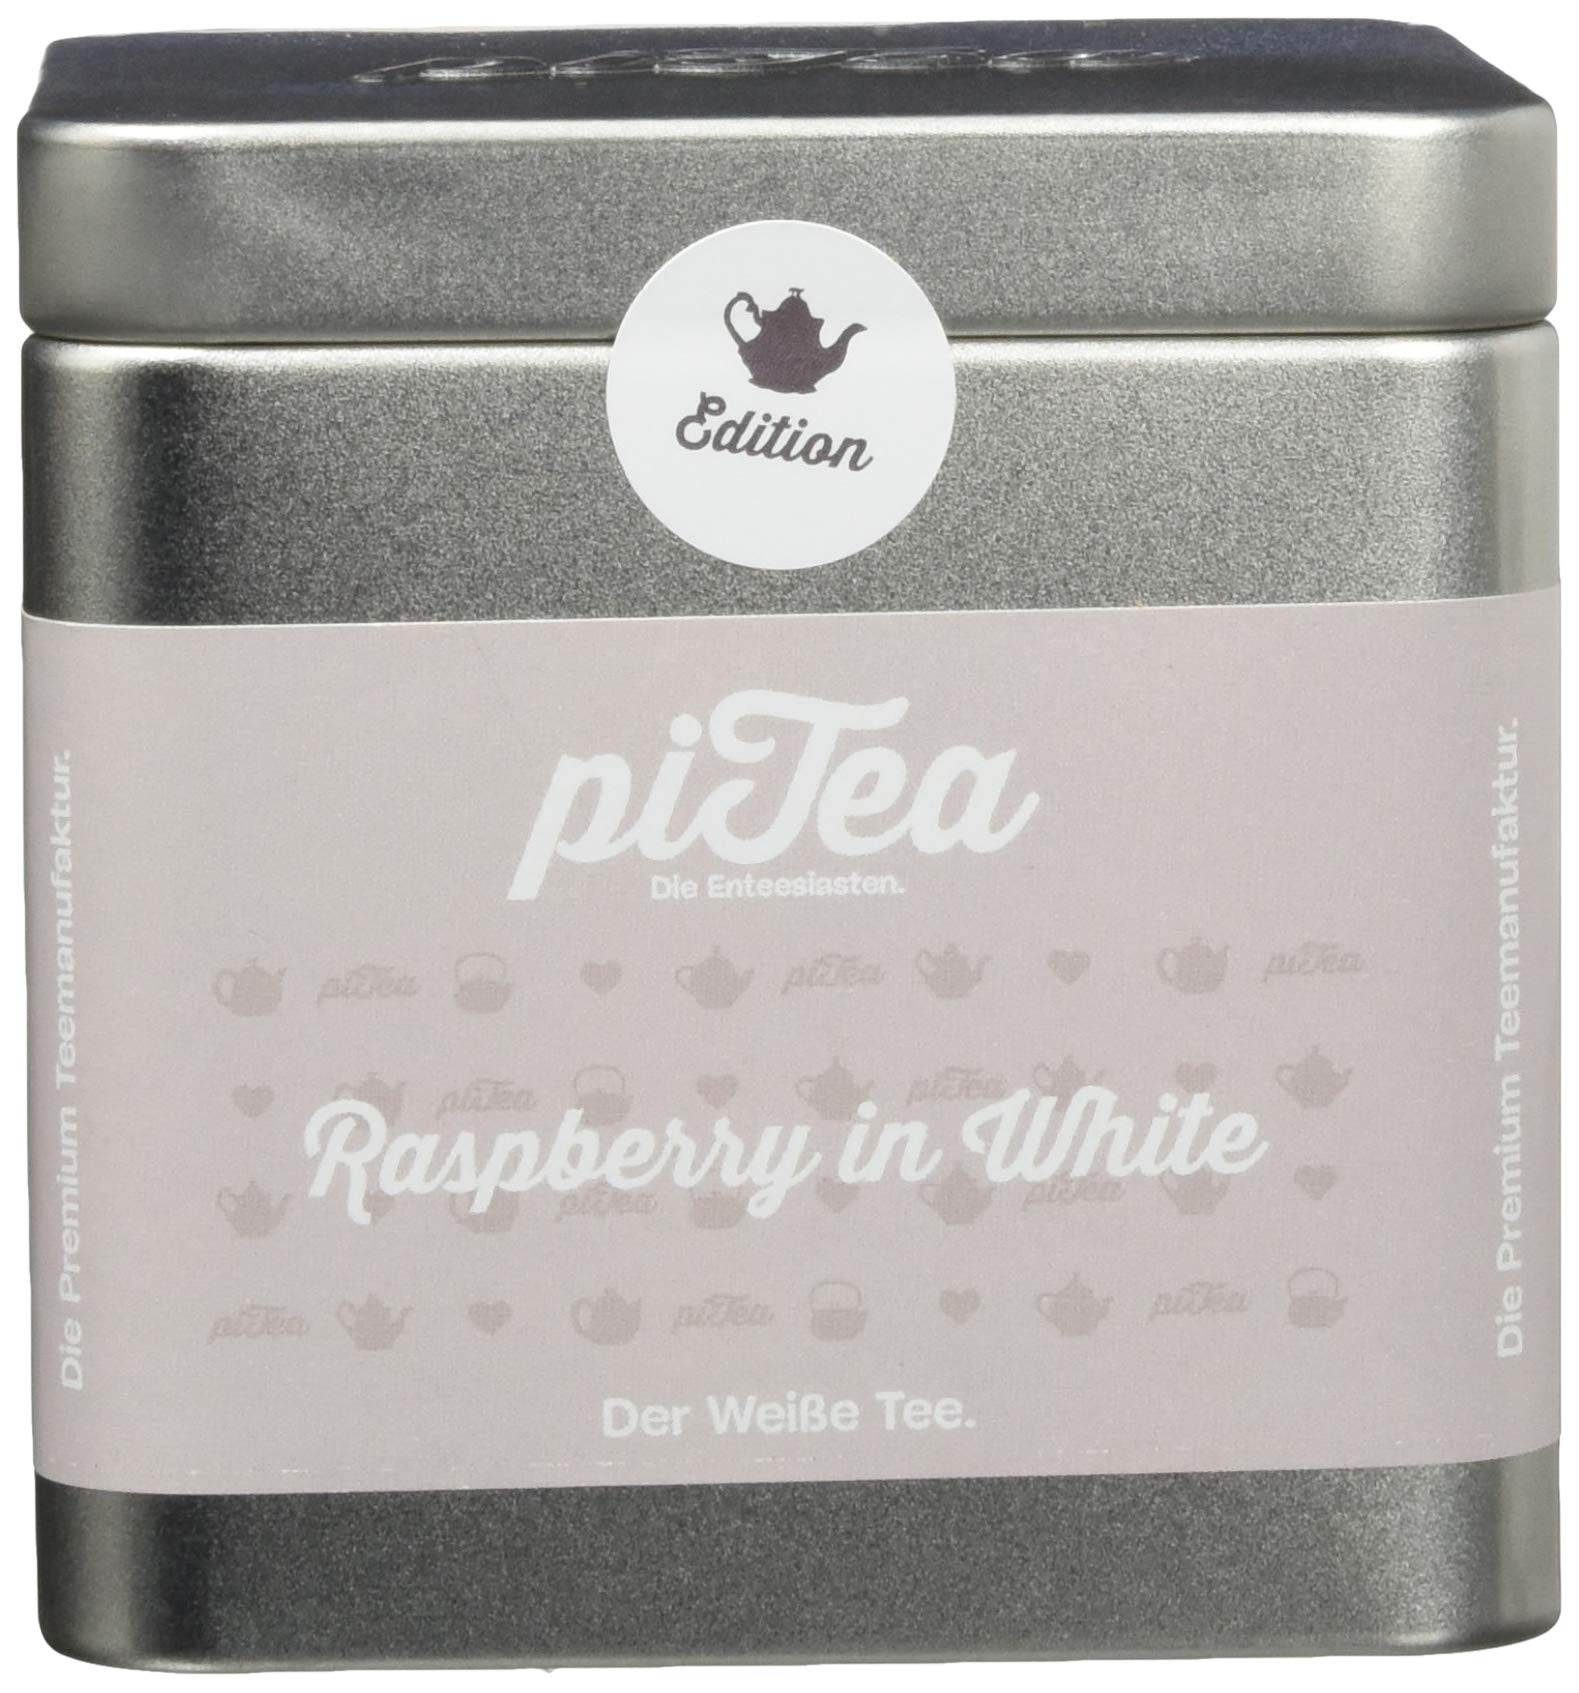 Pi-Tea-Raspberry-in-White-Dose-Weier-Tee-Teestation-natrlich-und-vegan-2er-Pack-2-x-50-g